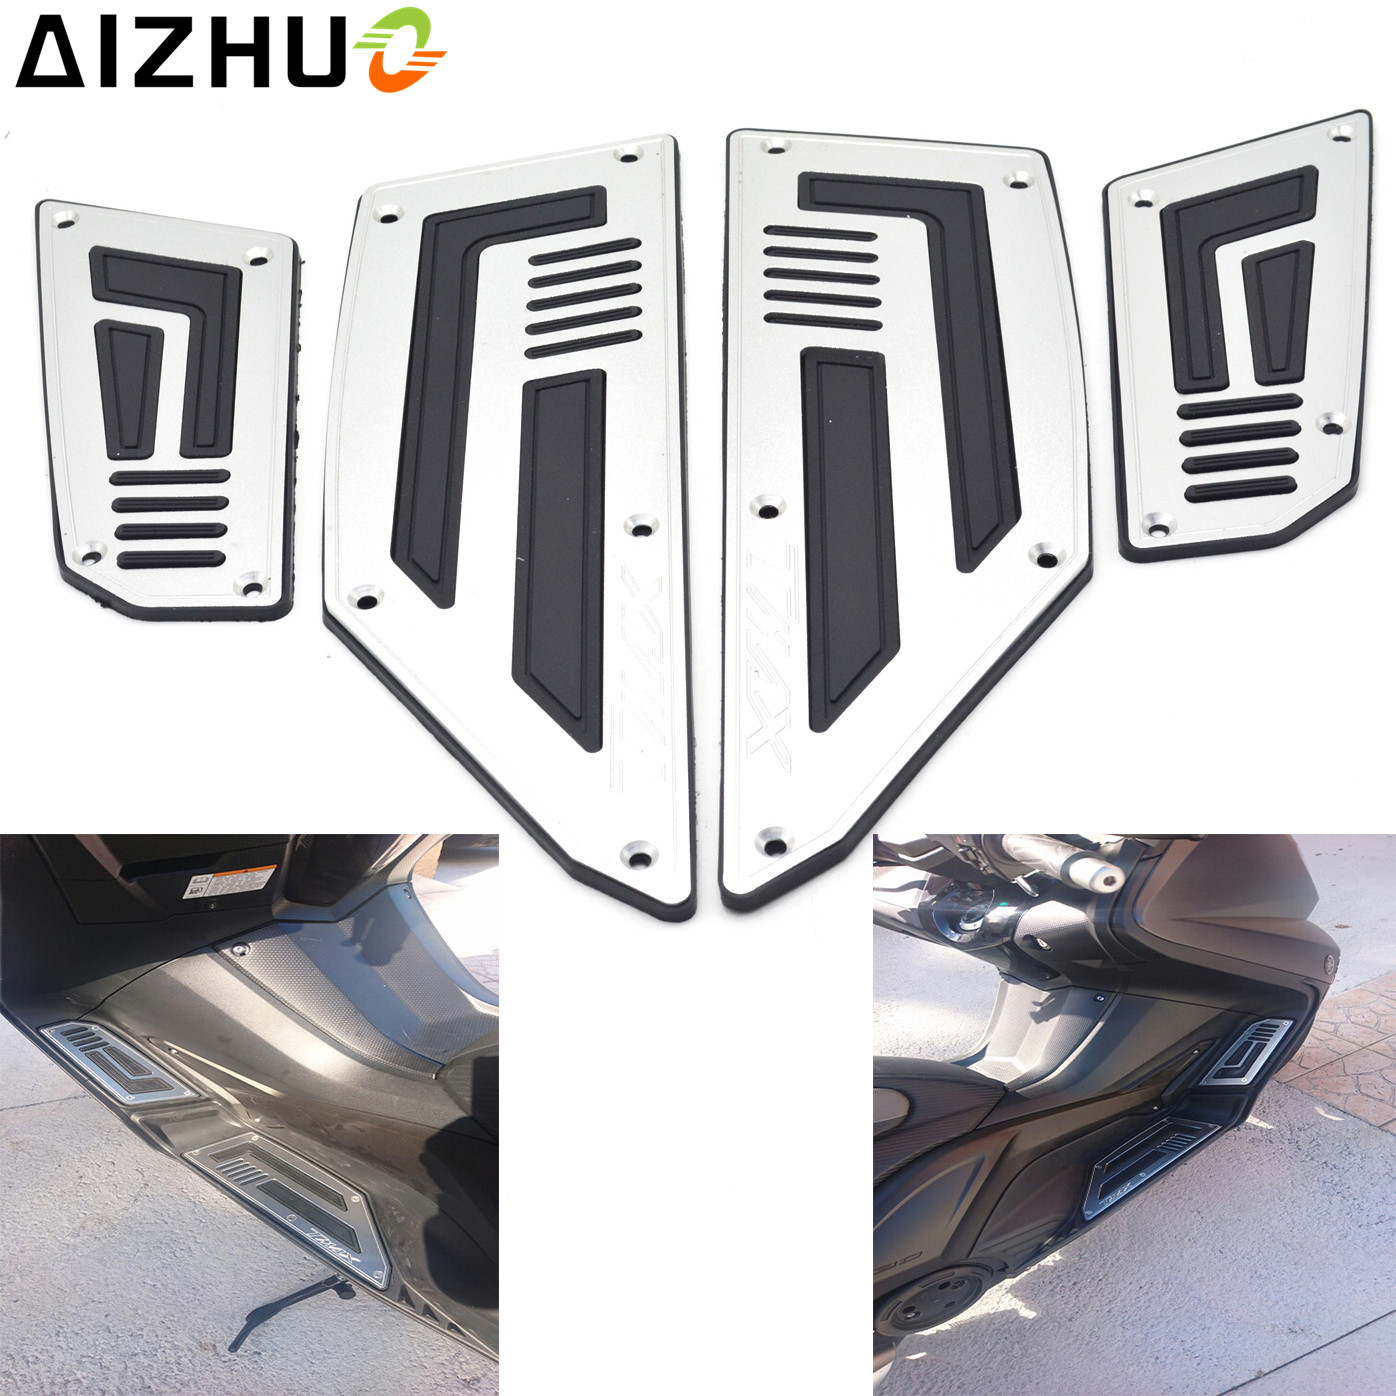 TMAX LOGO Motorcycle Foot Plate Foot Rest CNC Aluminum Motorbike Footrest For Yamaha TMAX 530 TMAX530  2012 2013 2014 2015 2016